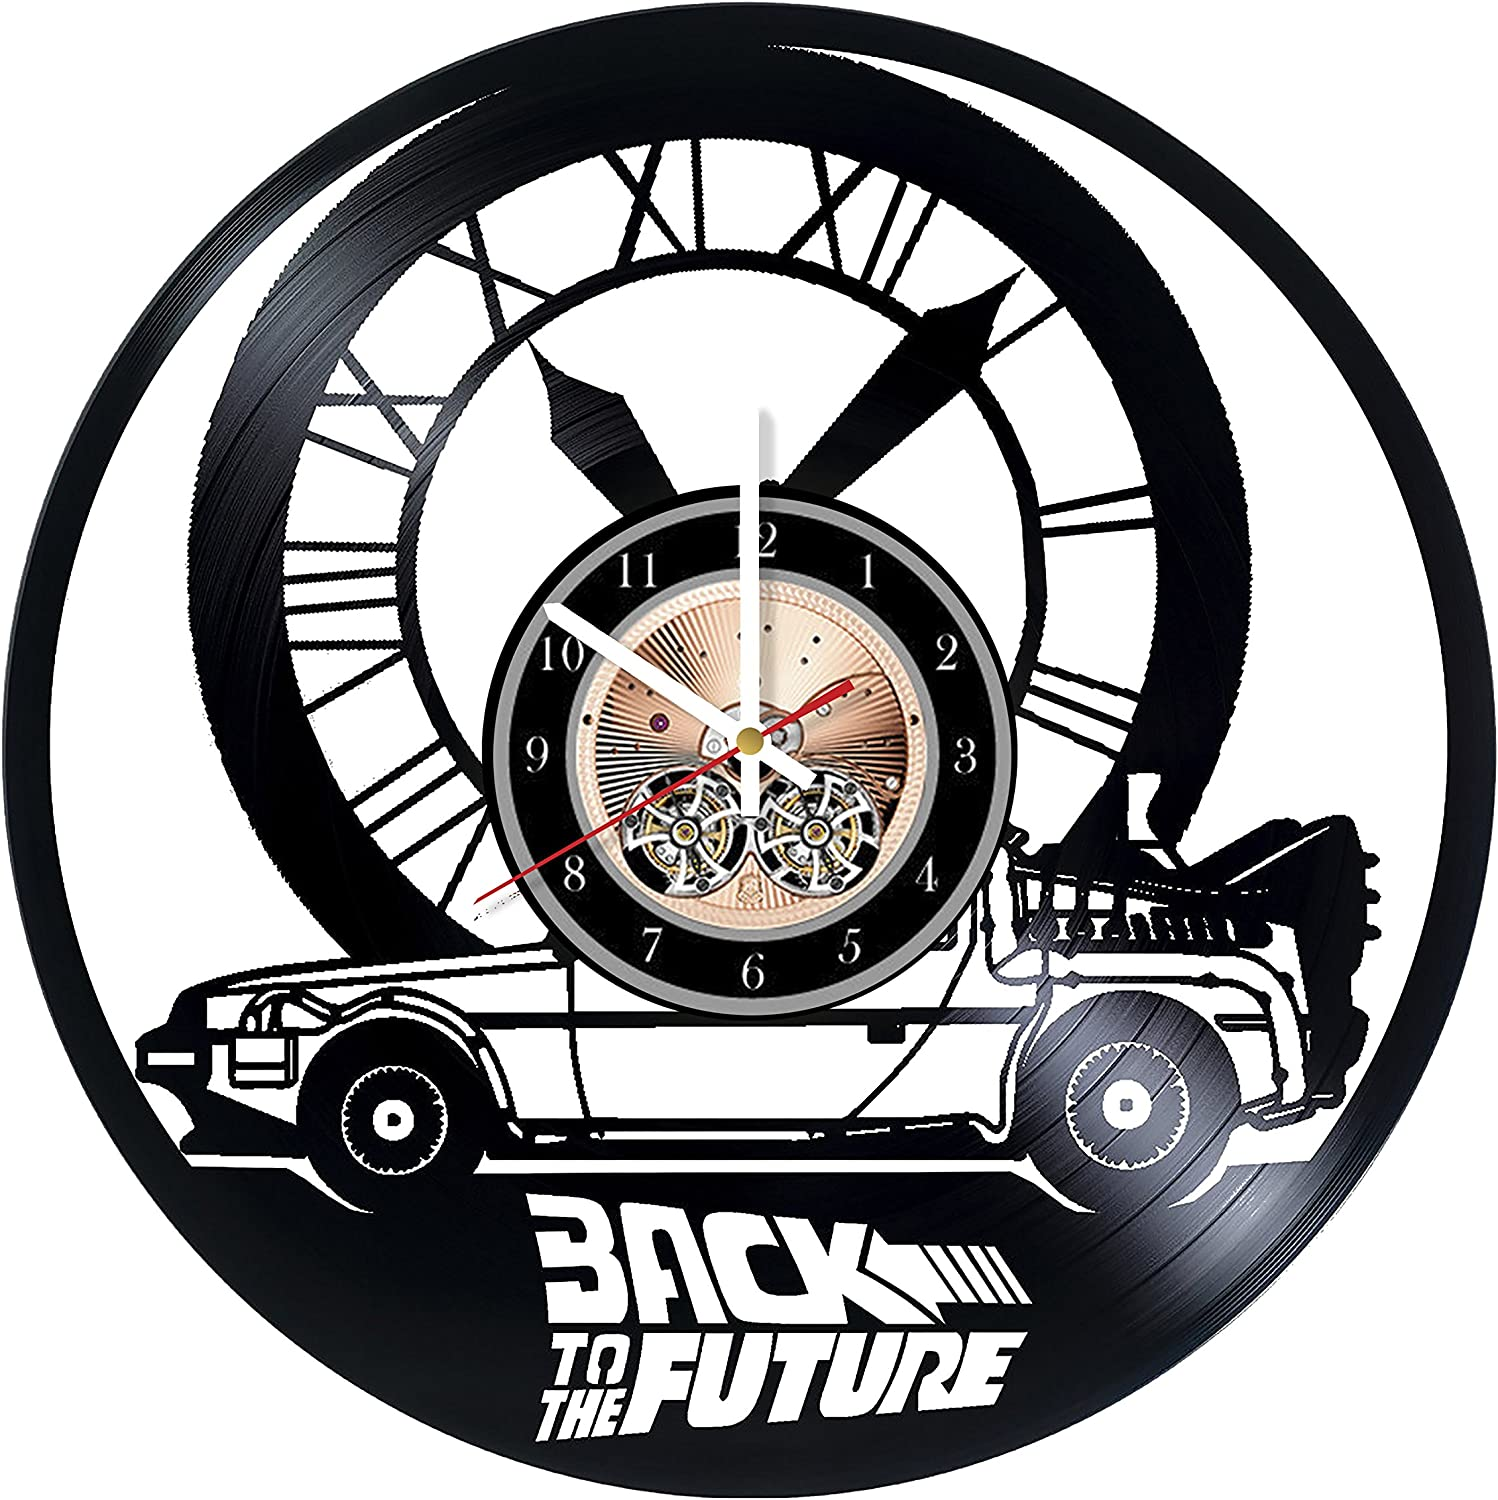 Amazon Com Back To The Future Design Art Vinyl Record Wall Clock 12 Really The Most Original Gift For Him And Her Perfect Element Of The Interior And Amazing Home Decor